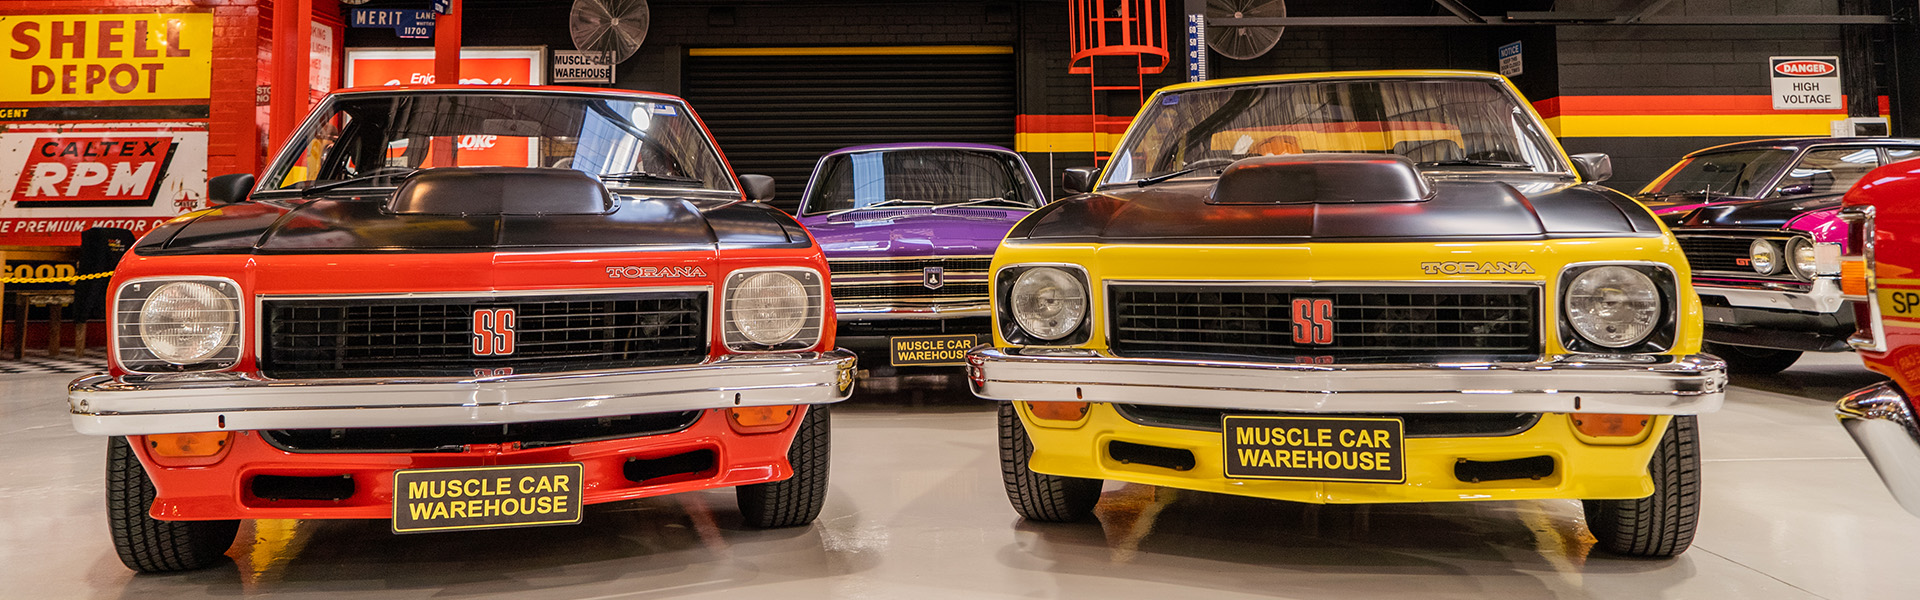 Muscle Car Warehouse - Australian Muscle Cars For Sale